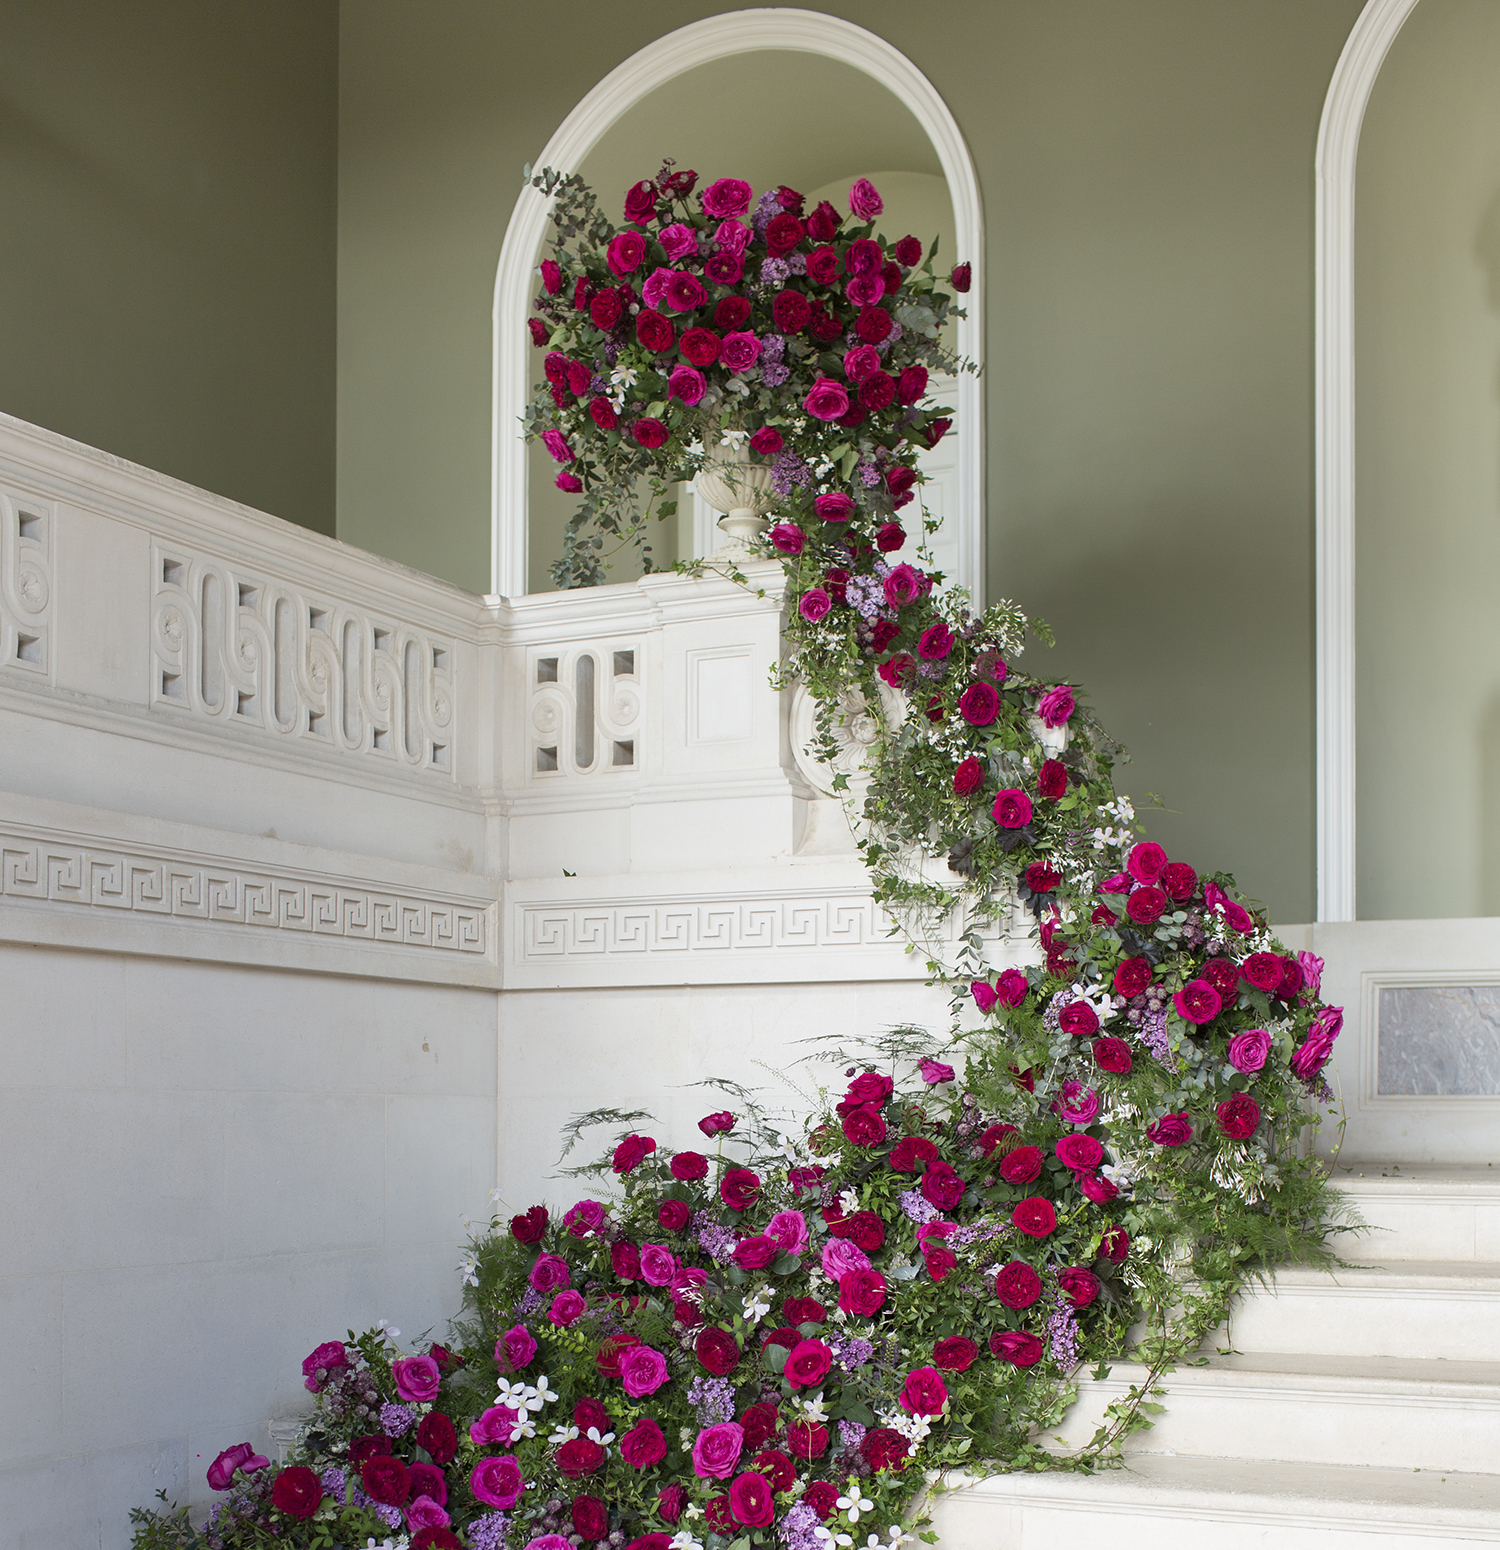 Capability roses staircase installation wedding